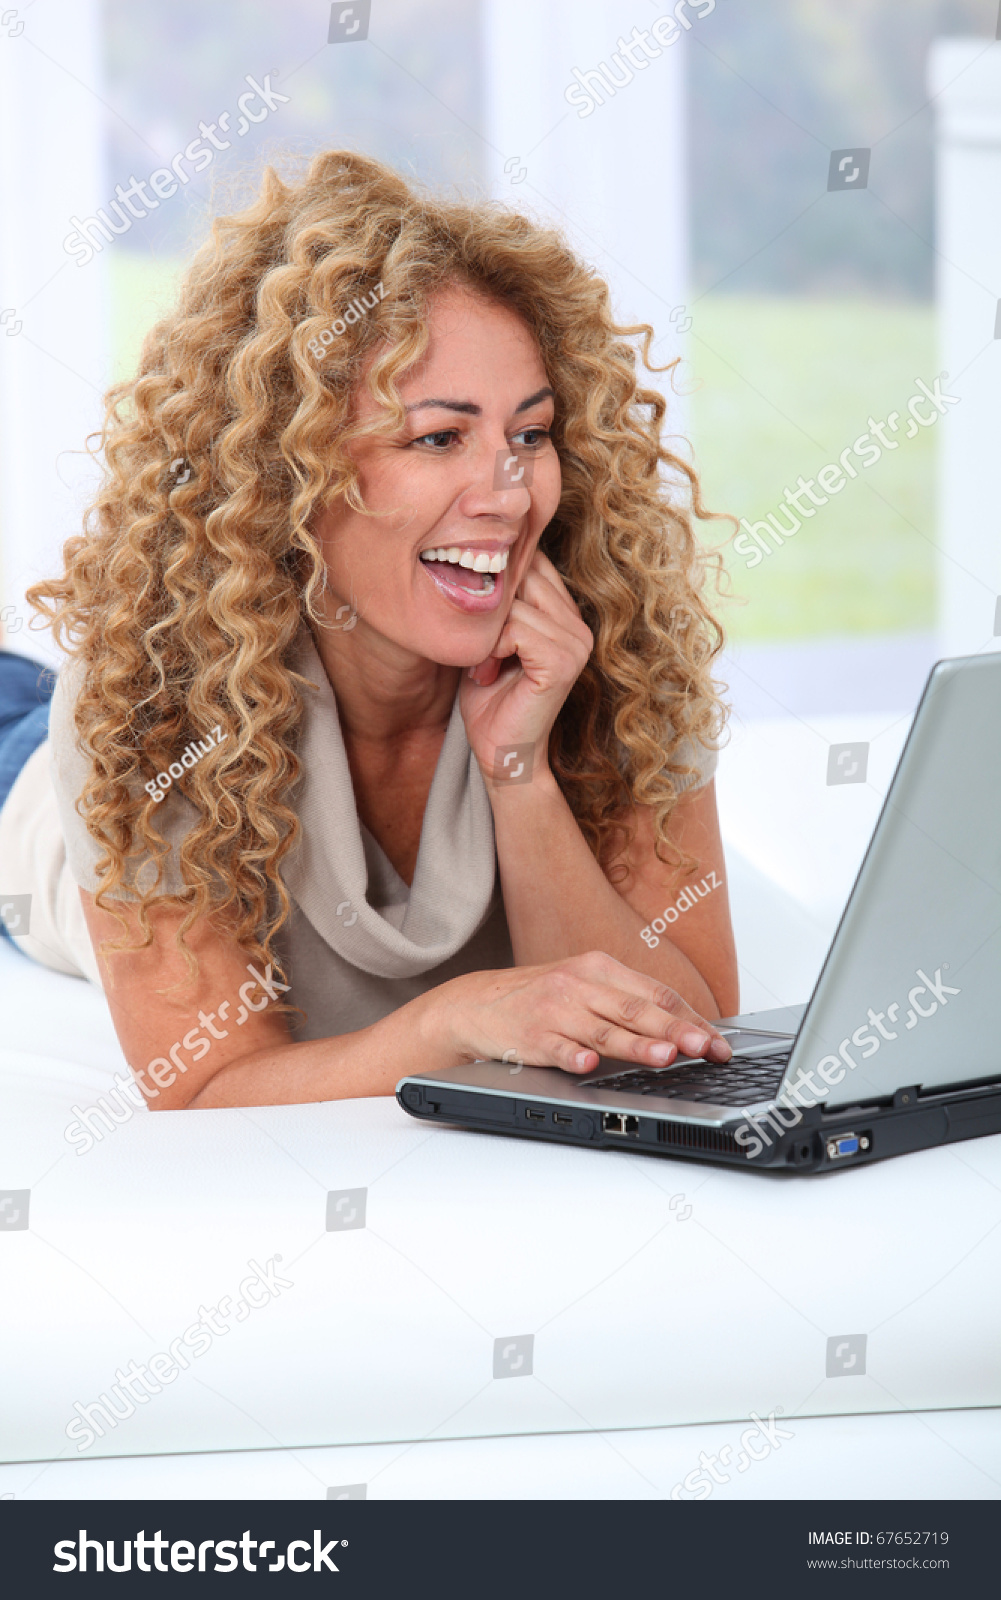 Woman at home using laptop computer #67652719